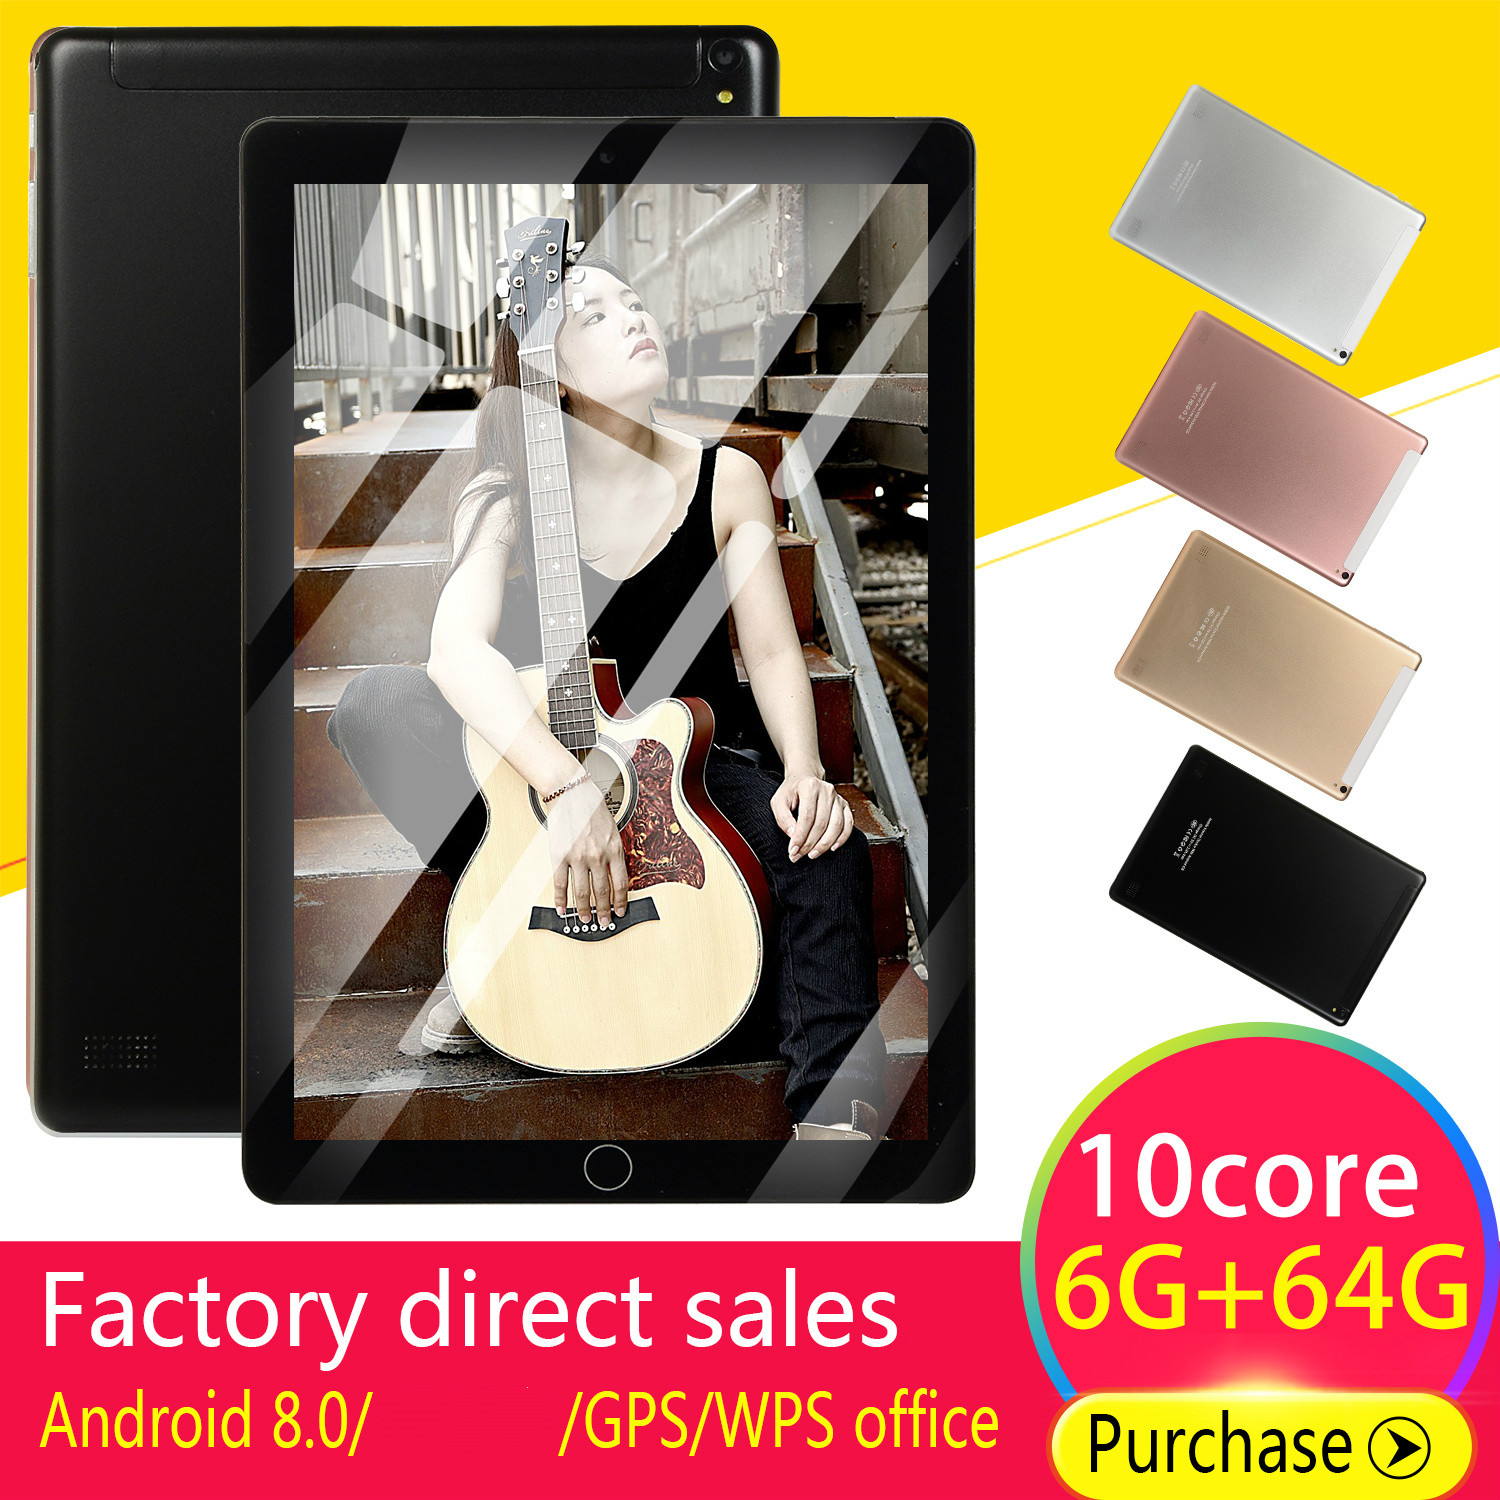 2020 5000mAh 10 'Android Tablets8.0 Quad Core 4GB RAM Internal 64G Camera 5MP Tablet With A Sim Card PC WiFi GPS Bluetooth